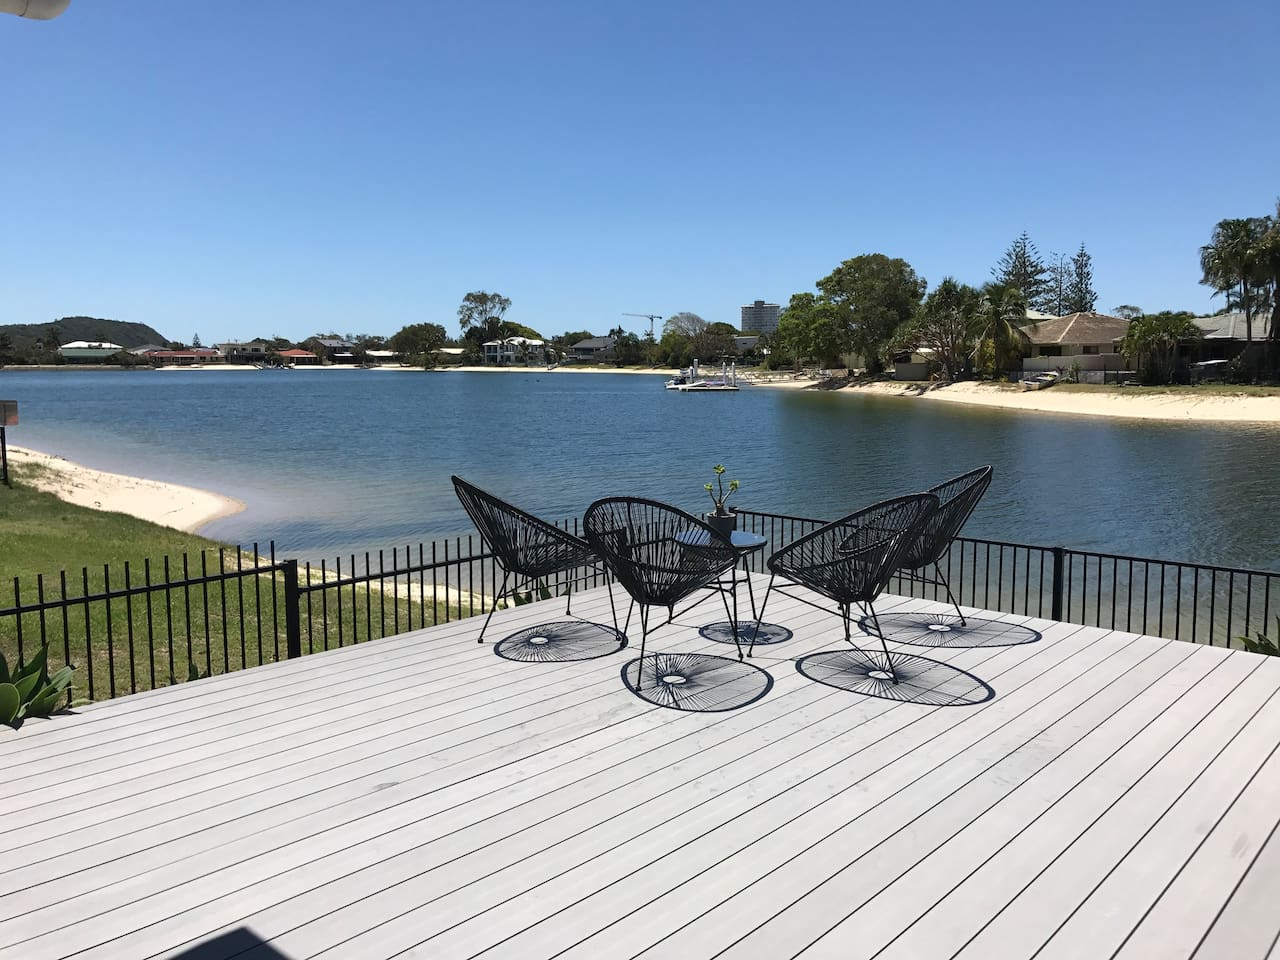 Paradise on the back deck, Burleigh hill in for ground, just of Tallebudgera Creek.